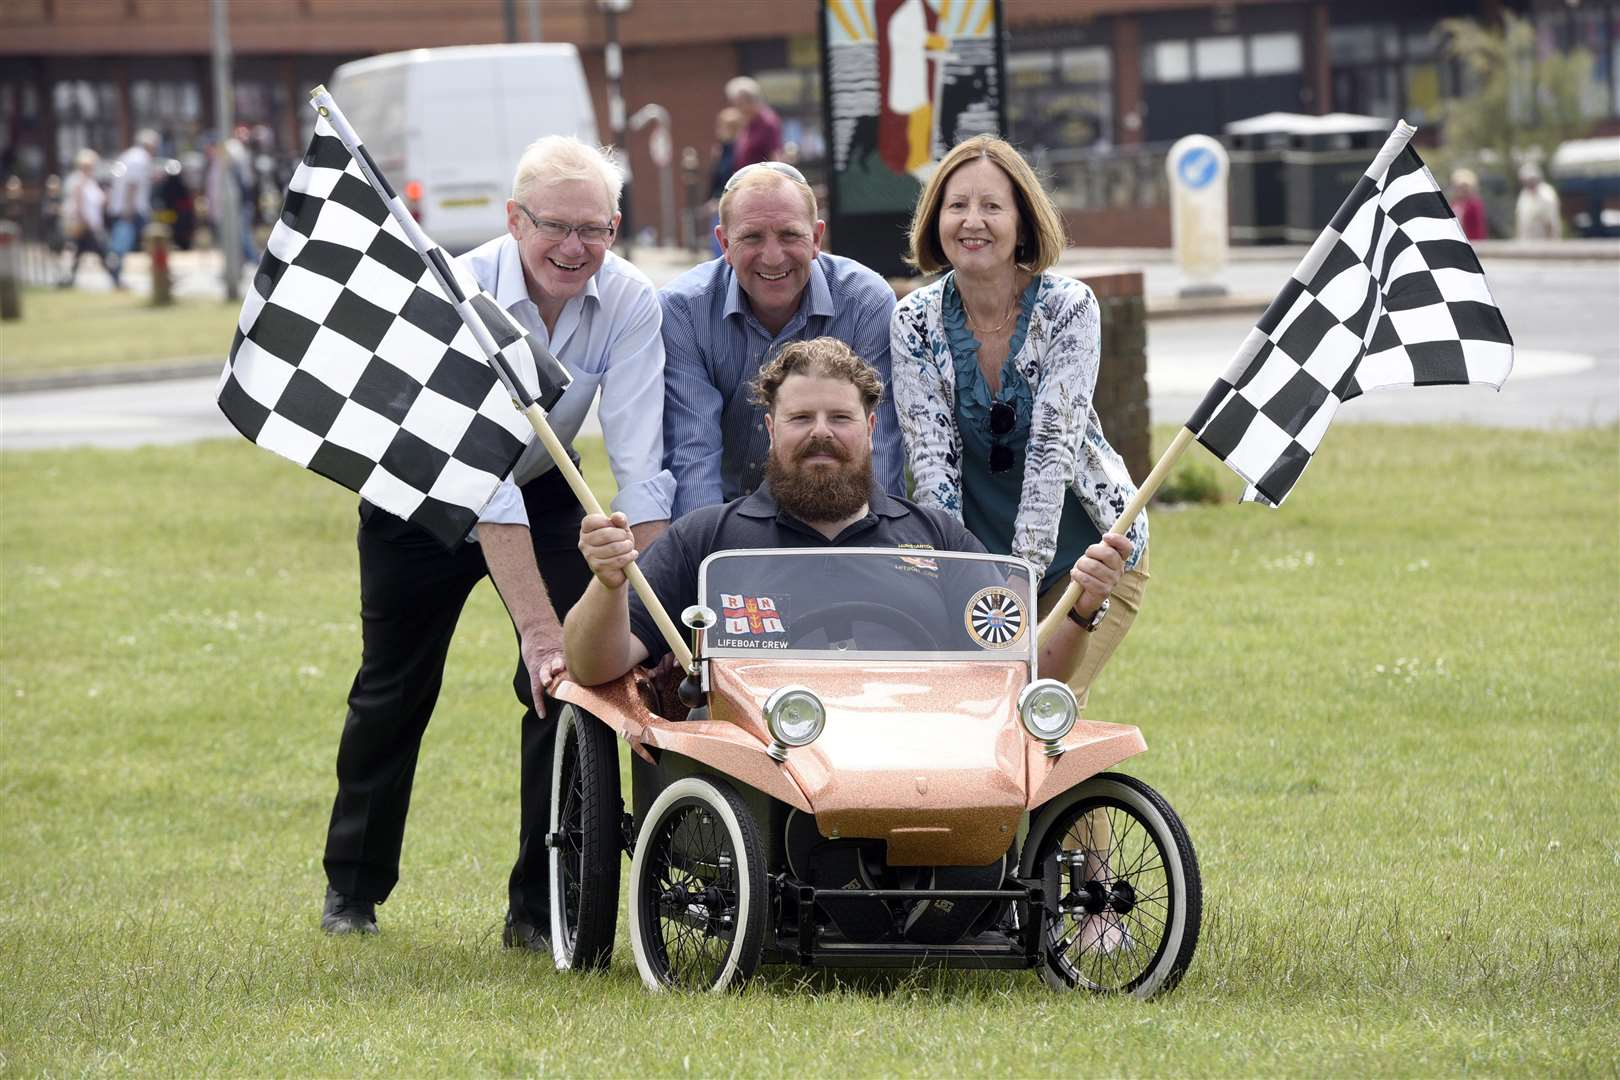 Launch of Hunstanton Soap Box Derby left to right back Roger Partridge, Chris Durham, Cllr Elizabeth Nockolds and front Ed Napolitano, winner of last year's race (2421139)